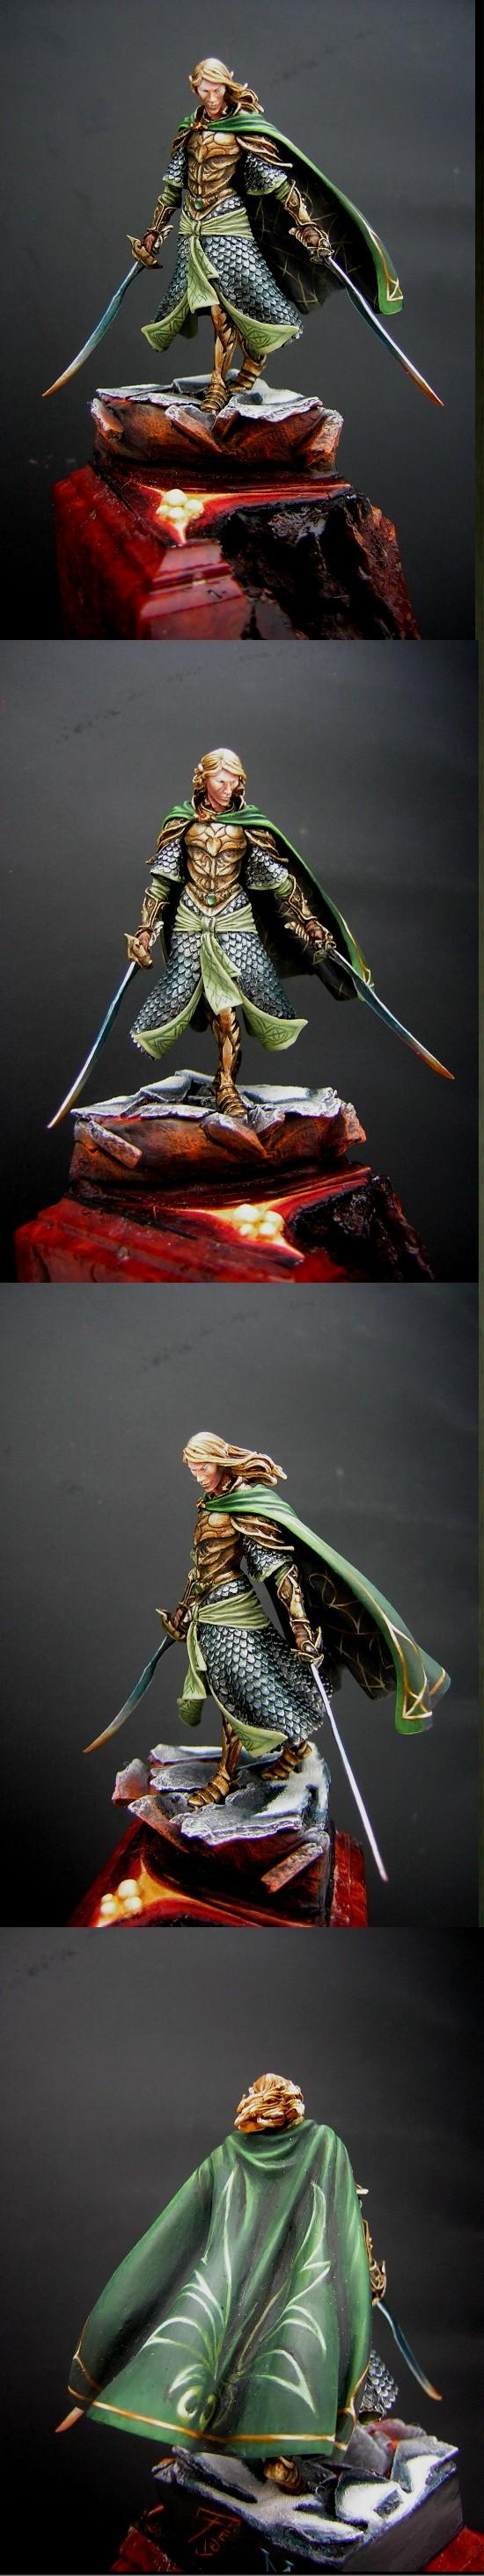 Eldar, Elves, Lighting, Warhammer Fantasy